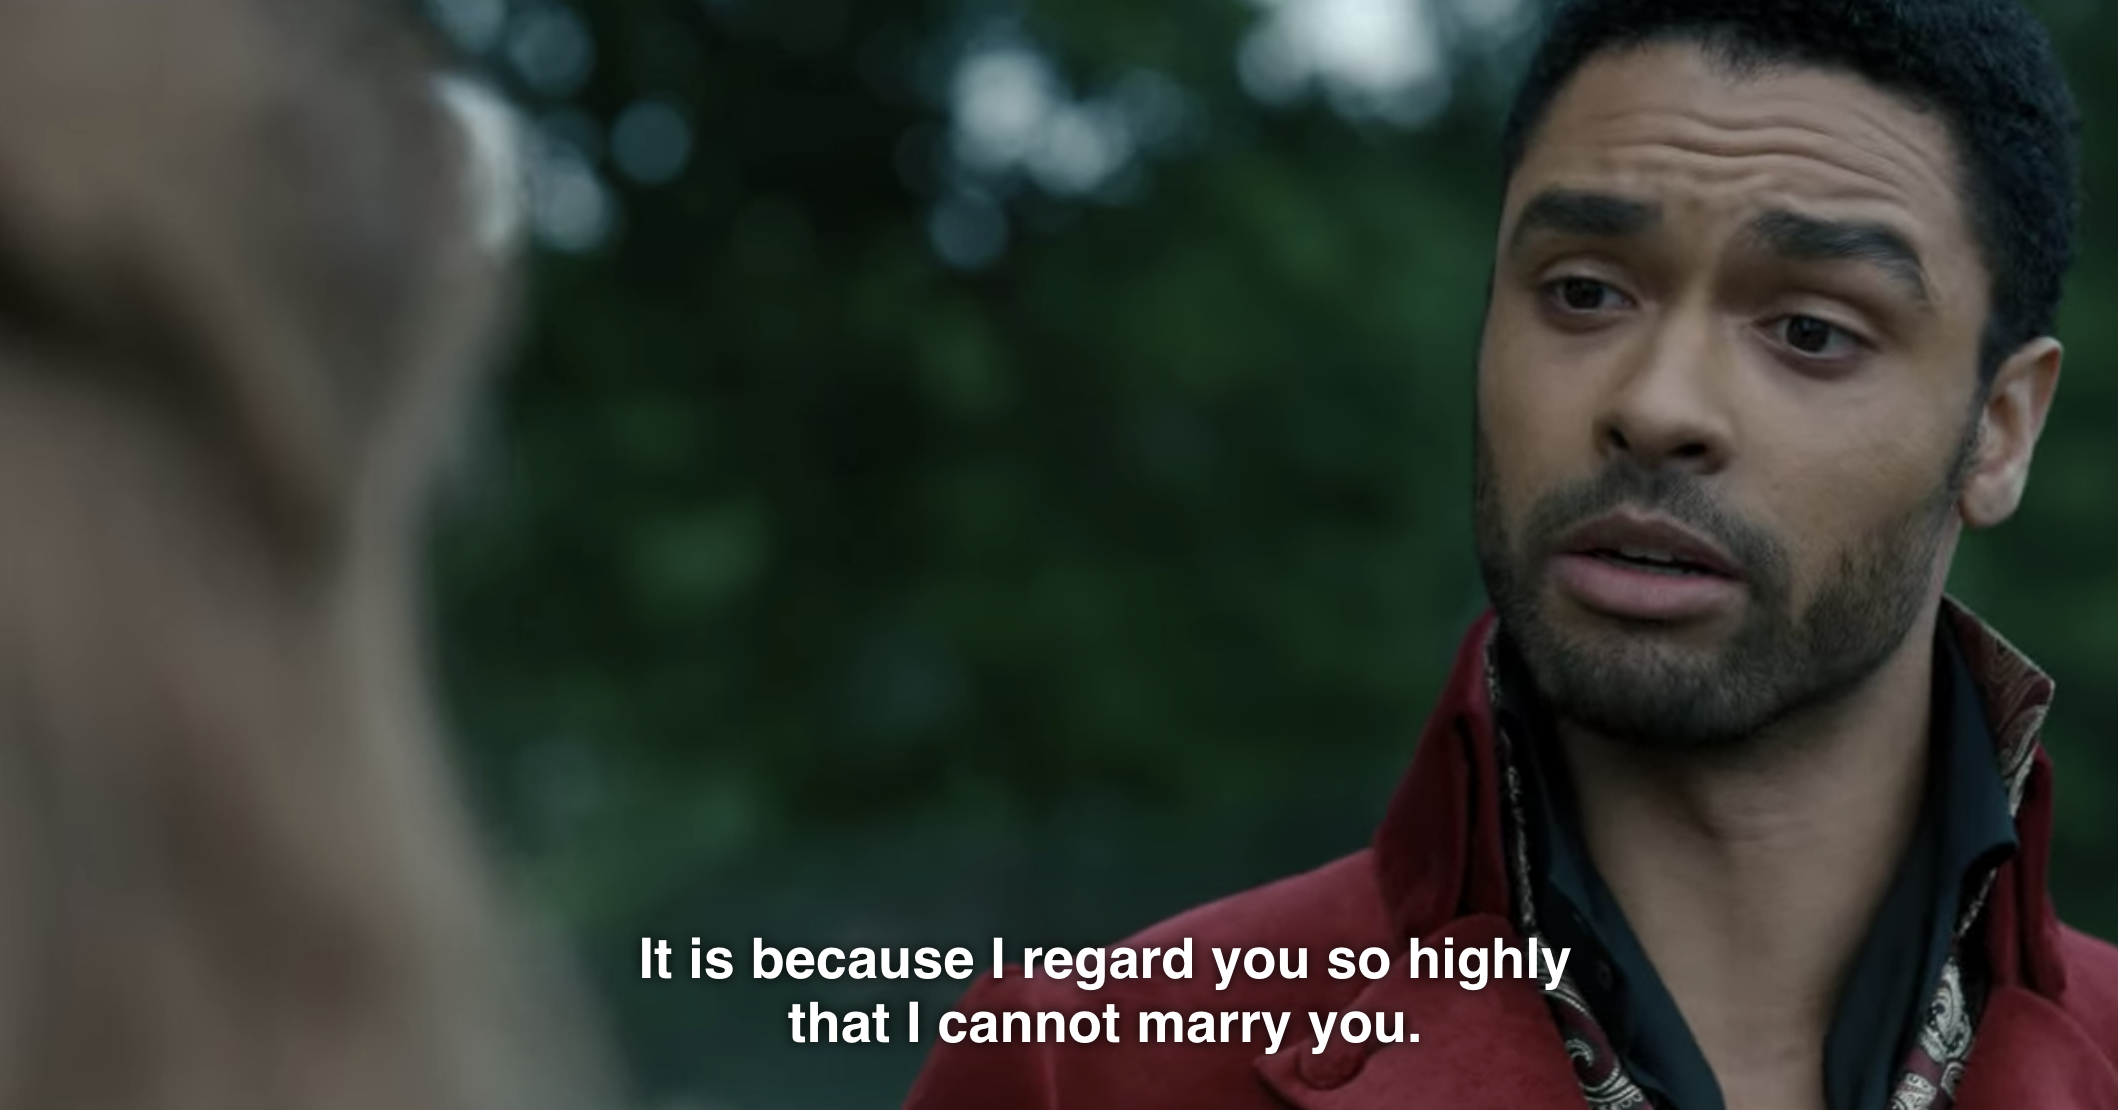 Simon telling Daphne in Bridgerton that it is because I regard you so highly that I cannot marry you